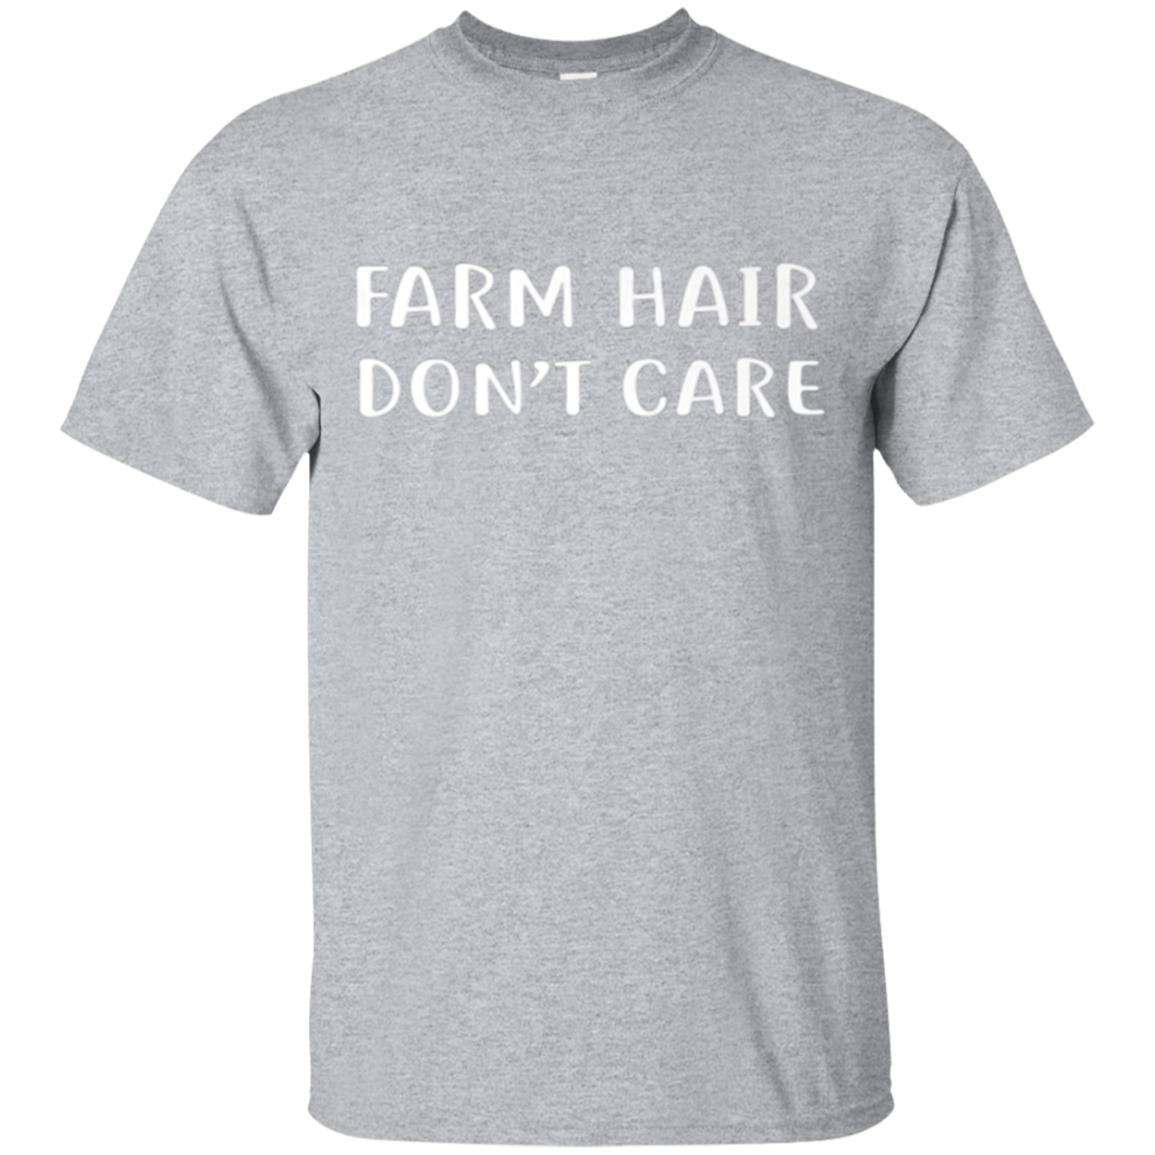 Farm Hair Don't Care T-Shirt Farming Rancher Tractor Shirt 99promocode